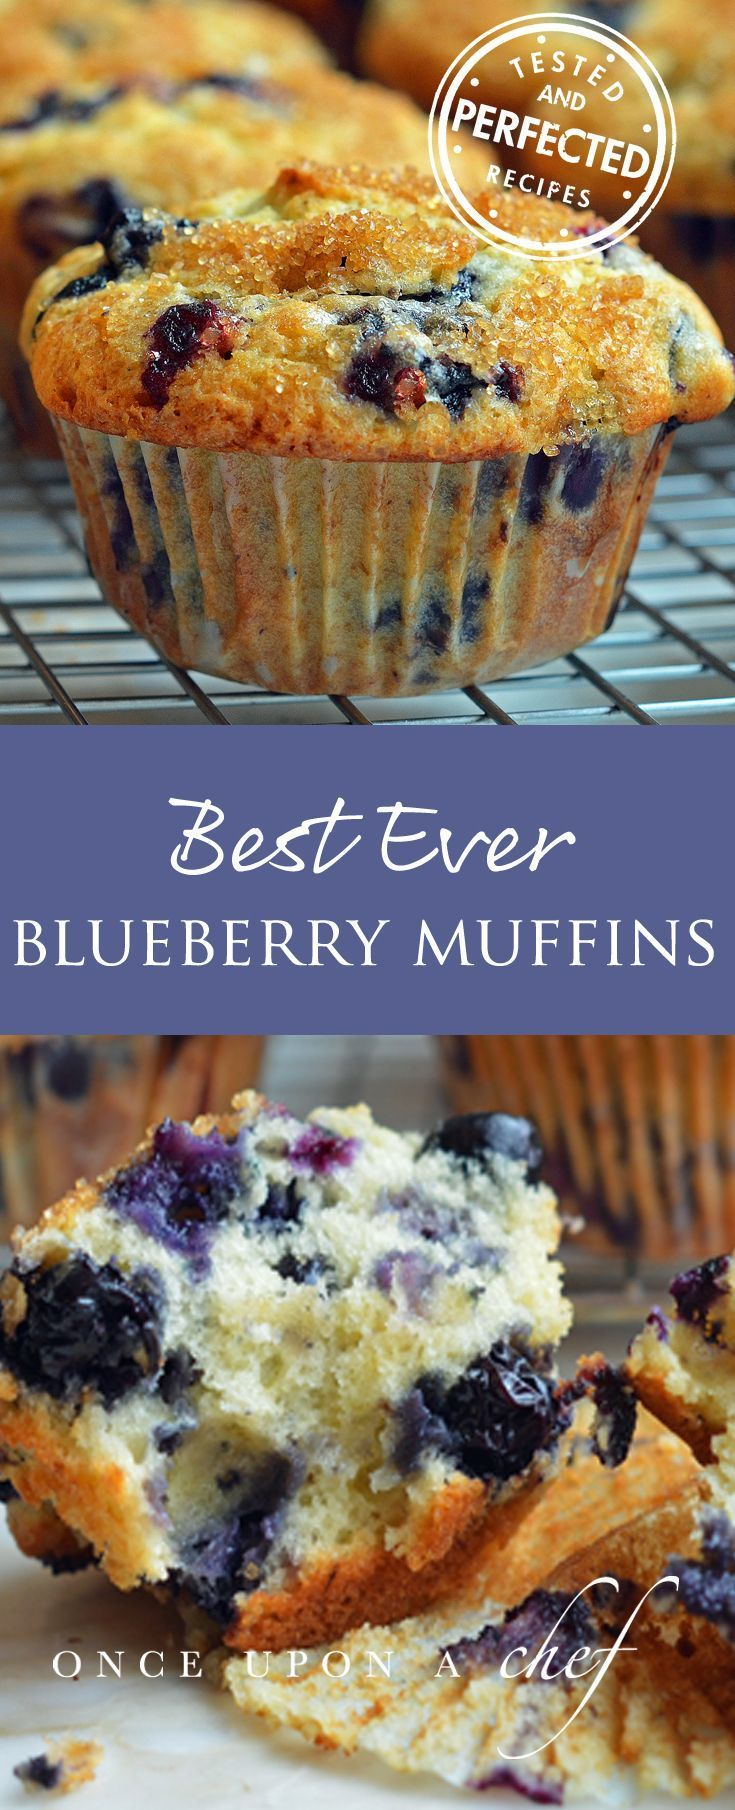 Best Blueberry Muffins. One word DELISH!!! So far my favorite recipe for blueberry muffins. My guest thought these came from a bakery. Plus use the sugar that goes on top before baking. It gives it extra crunch. It's not an over sweet muffin, which I like.